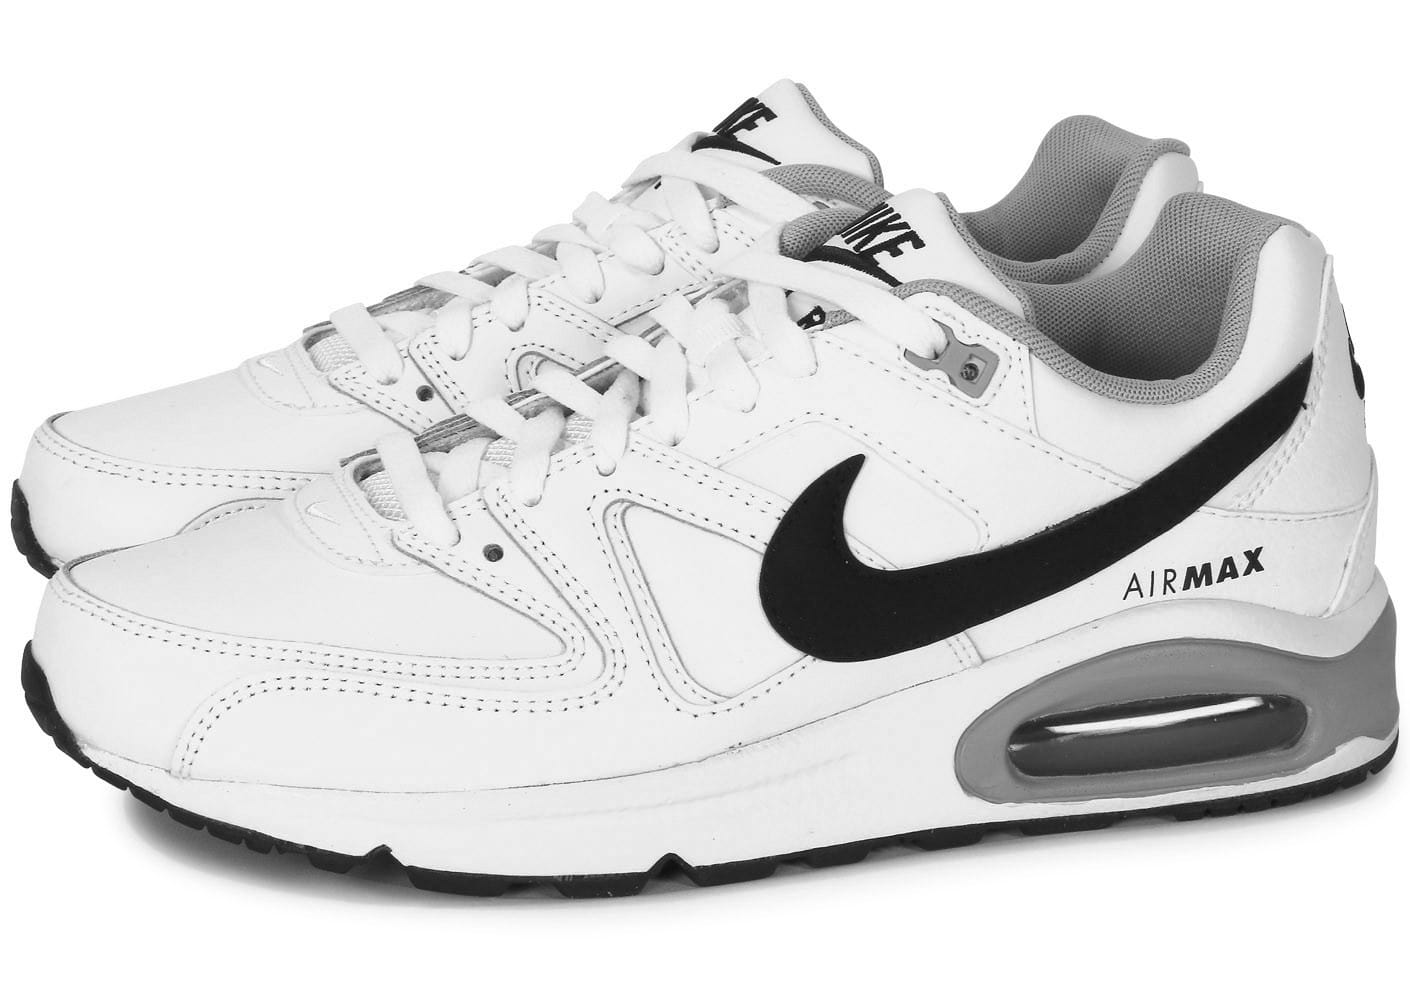 outlet store 8caee a2133 Nike Air Max Command blanc qoovzrvo - Homme Basket Nike - enfants Sneaker NIKE  Air Max Command Flex C Blanc Noir Nike Air Max Command Blanc,Noir,Bleu